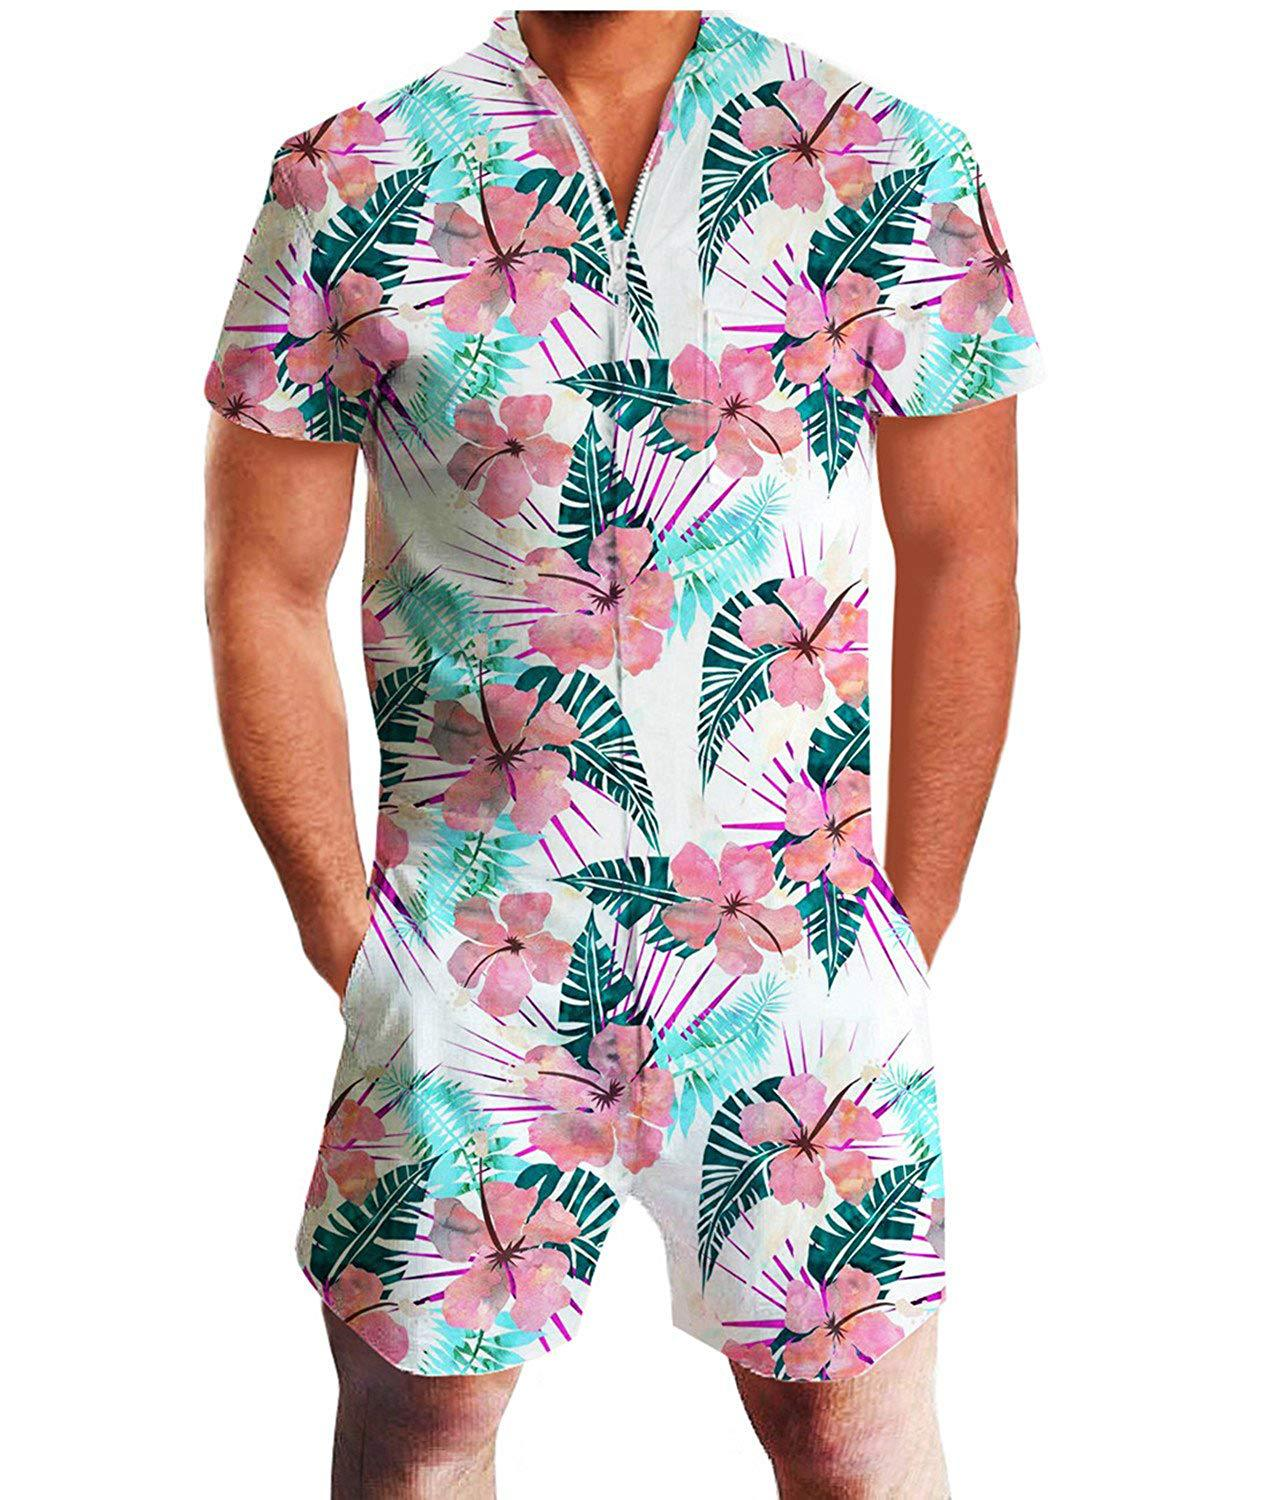 Europe And America Men's Summer Short-sleeved One-piece Hawaii Men Casual Tracksuit Printed Beach Swimming Trunks